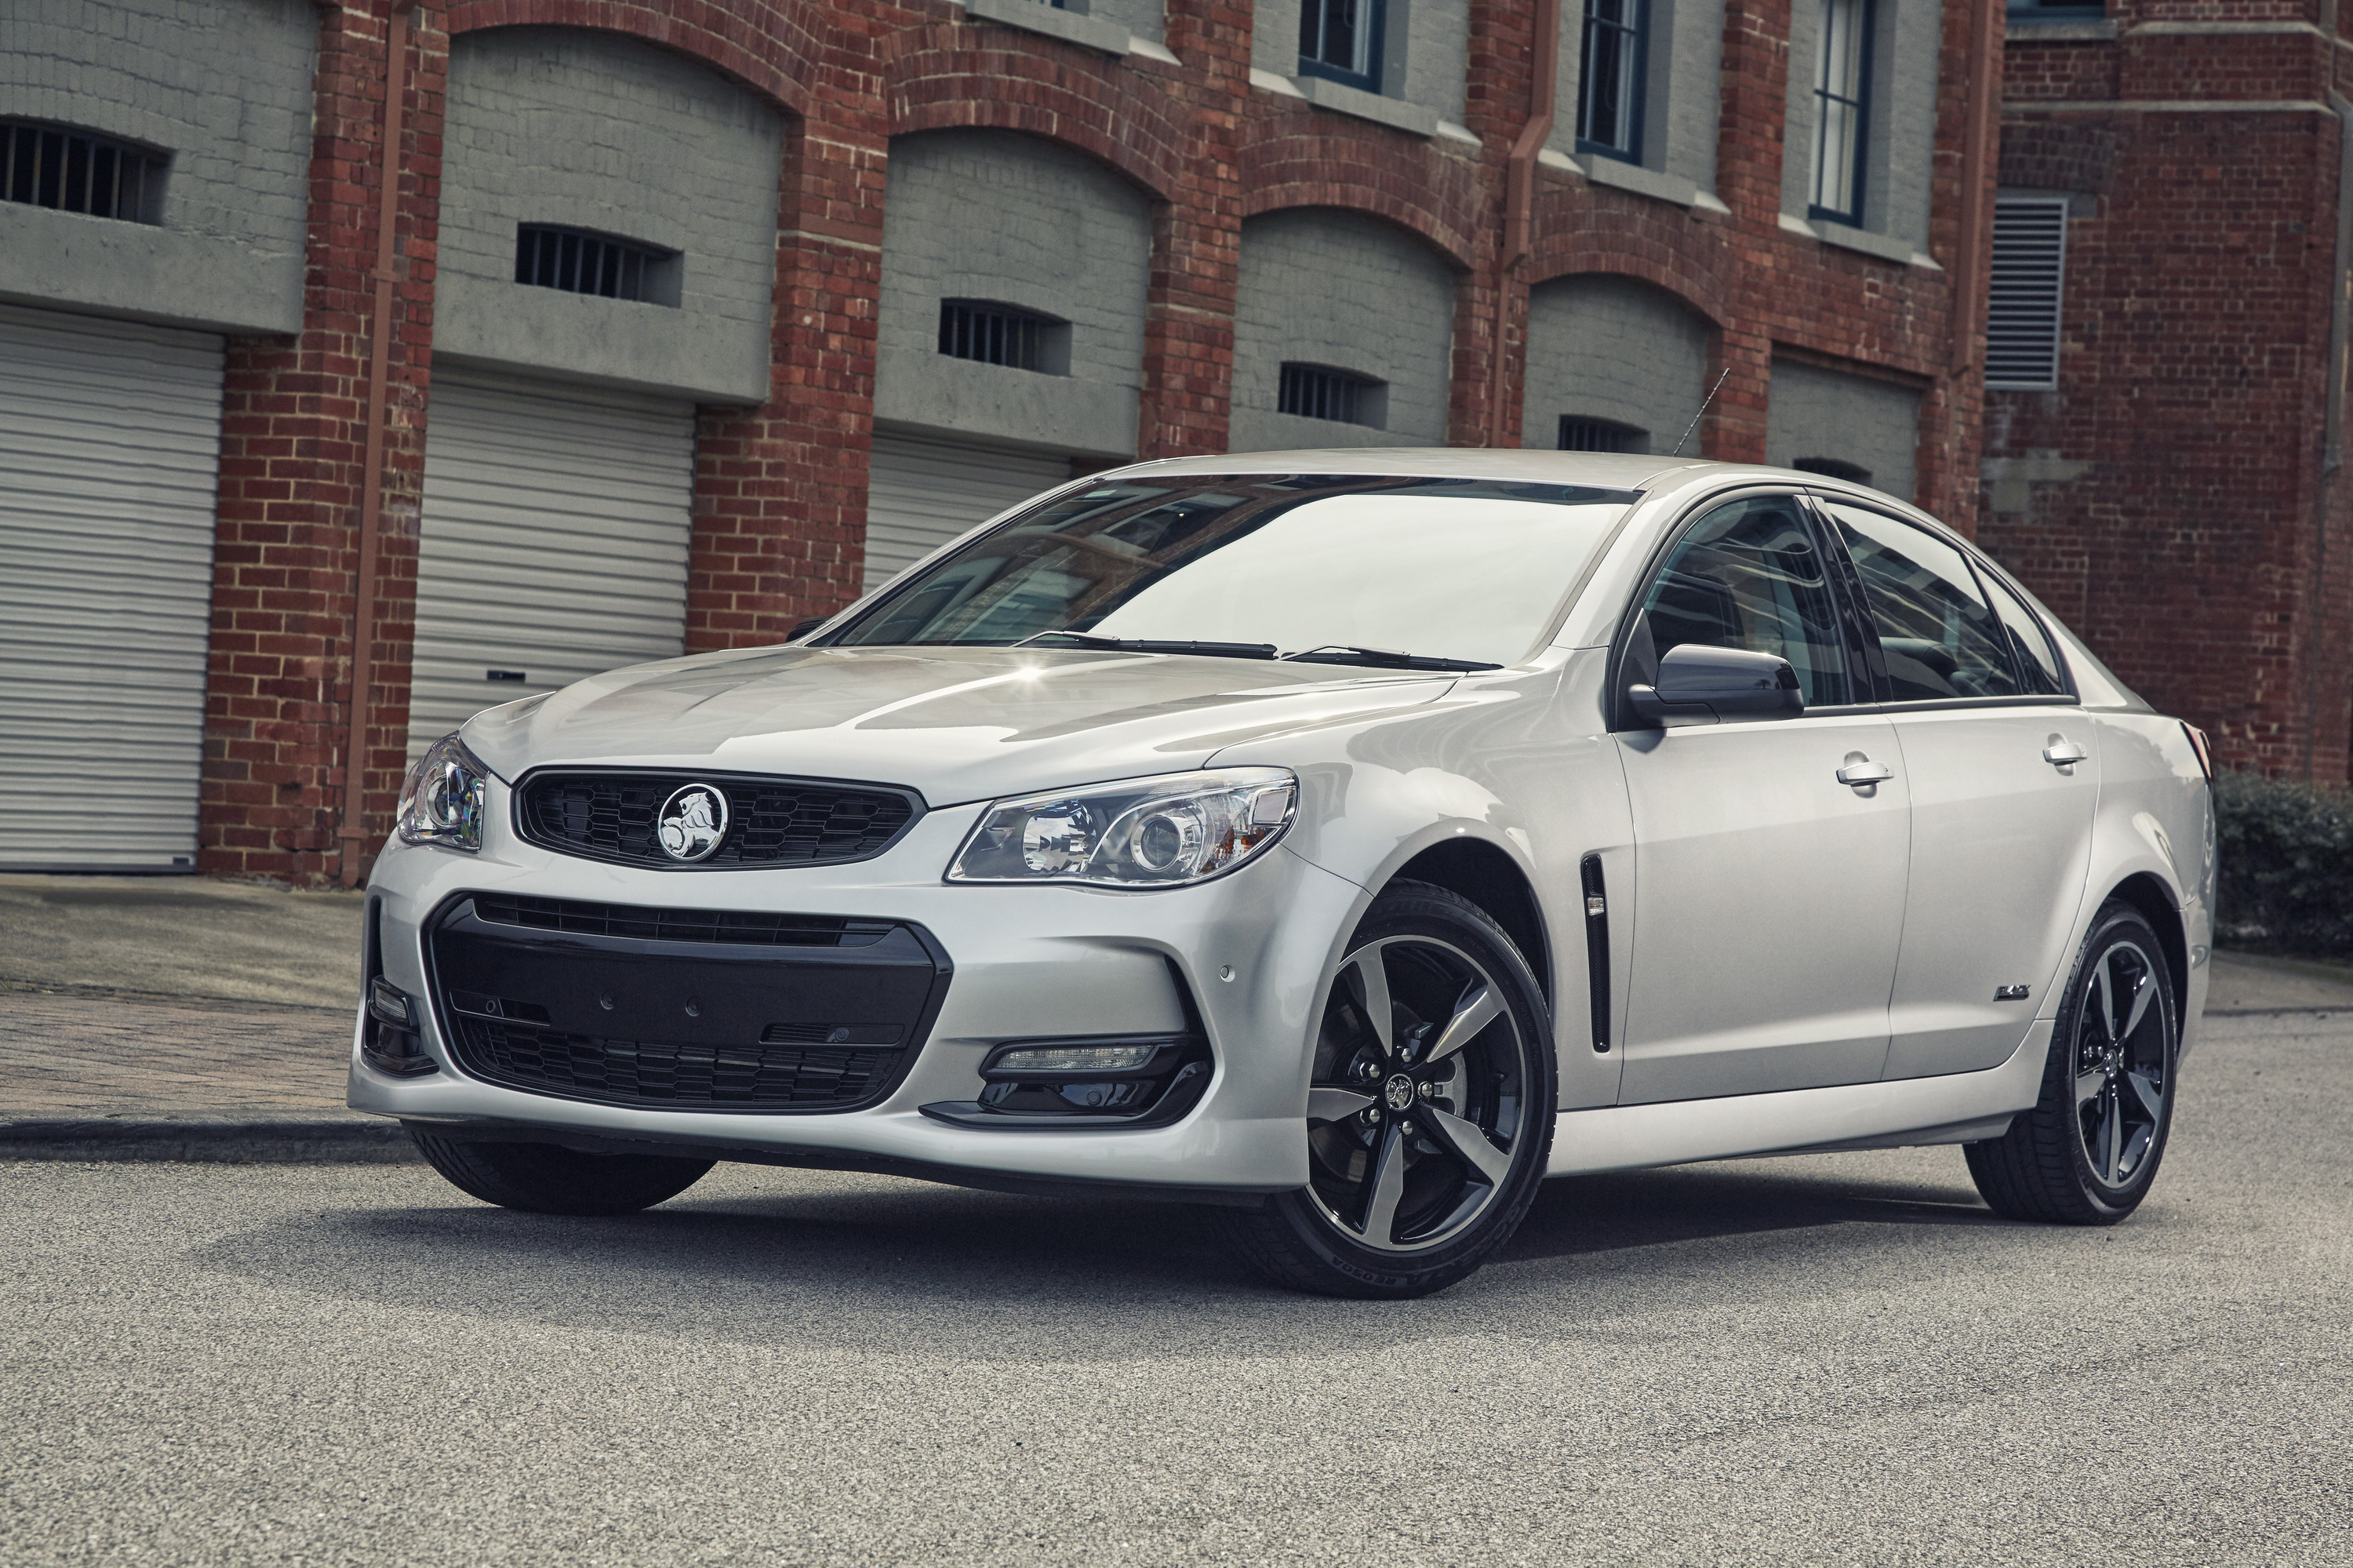 2016 Holden Commodore Black Edition   Top Speed. »